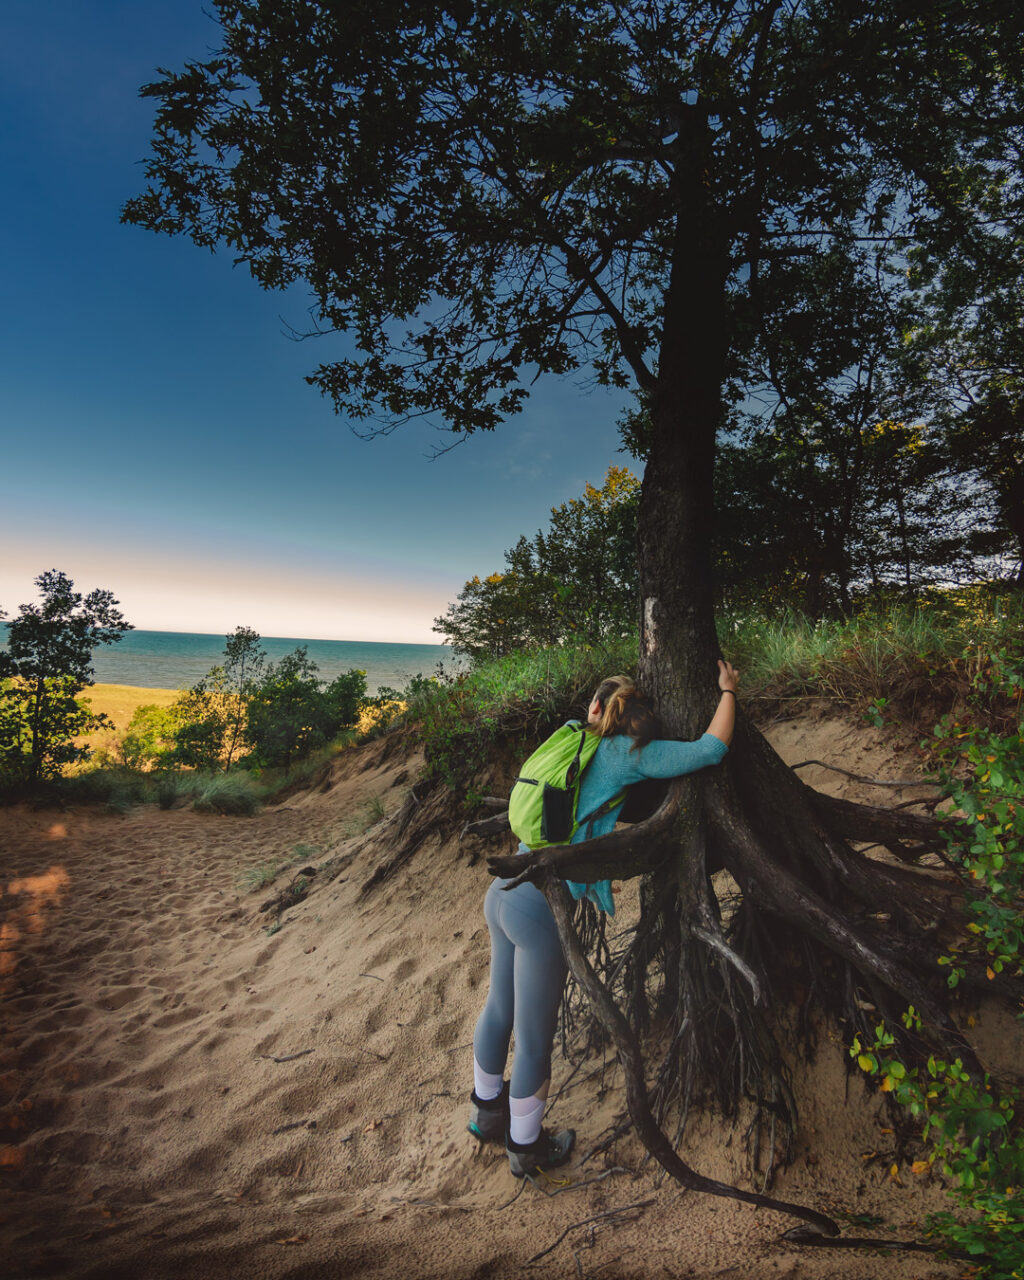 A woman hiker hugs a tree with exposed roots that seem to hug her back, with sand and Lake Michigan.